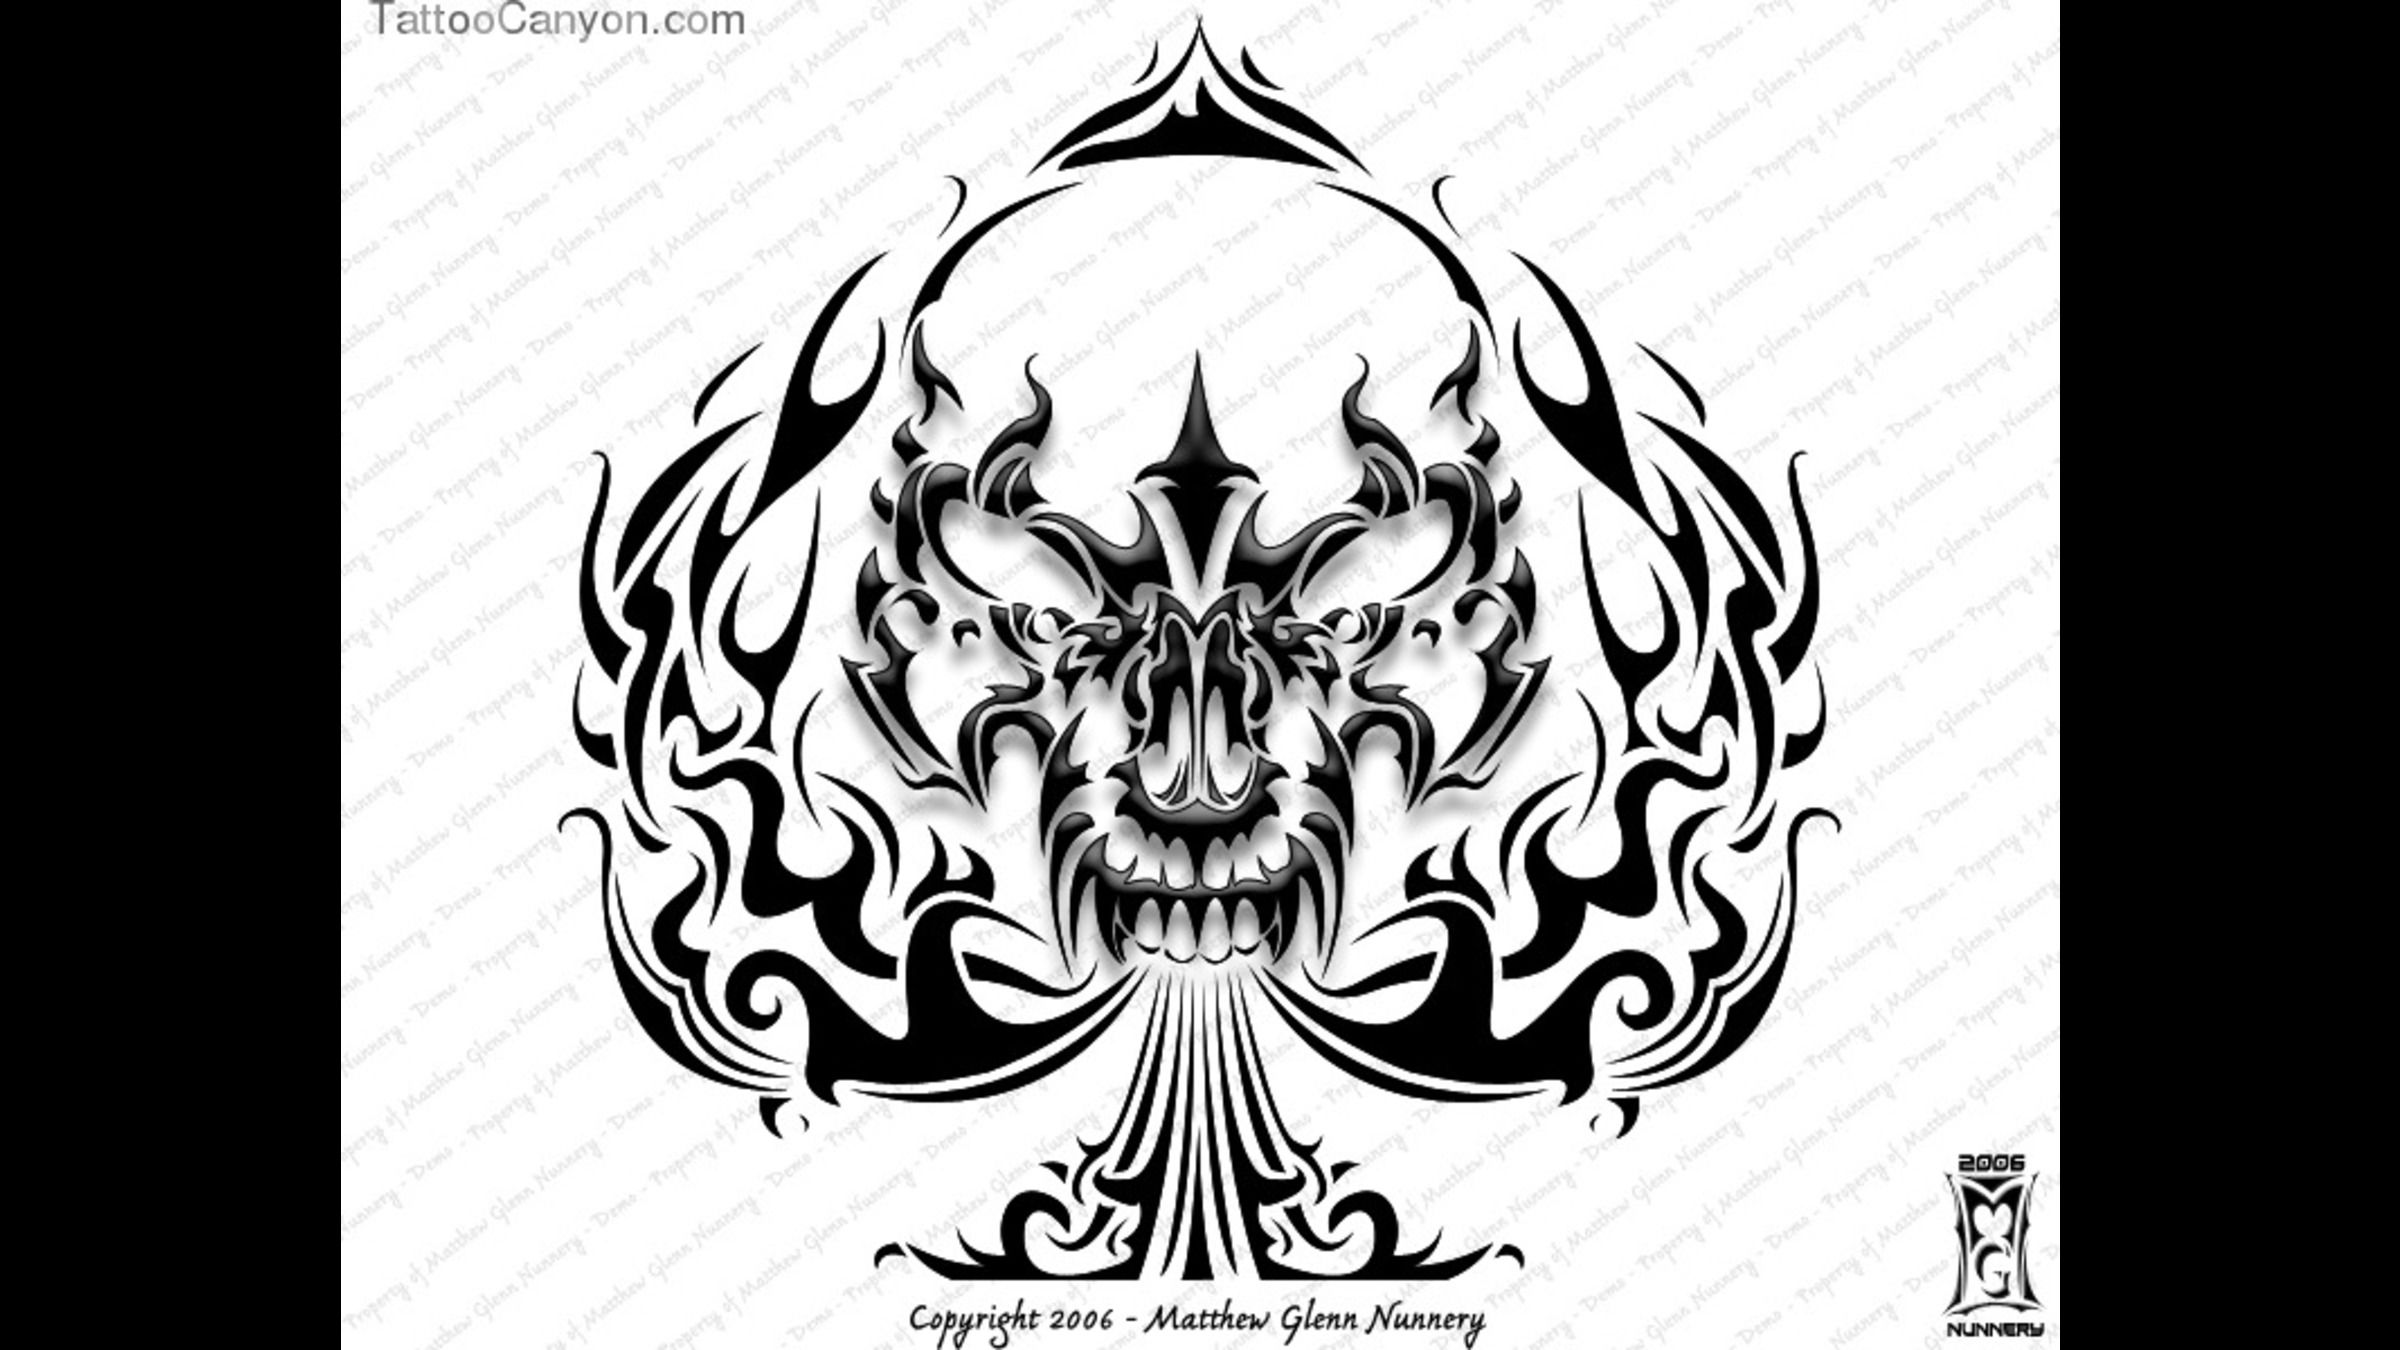 ... - Tribal Skull Spade Custom Tattoo Designs Free Tattoo Designs Jpg